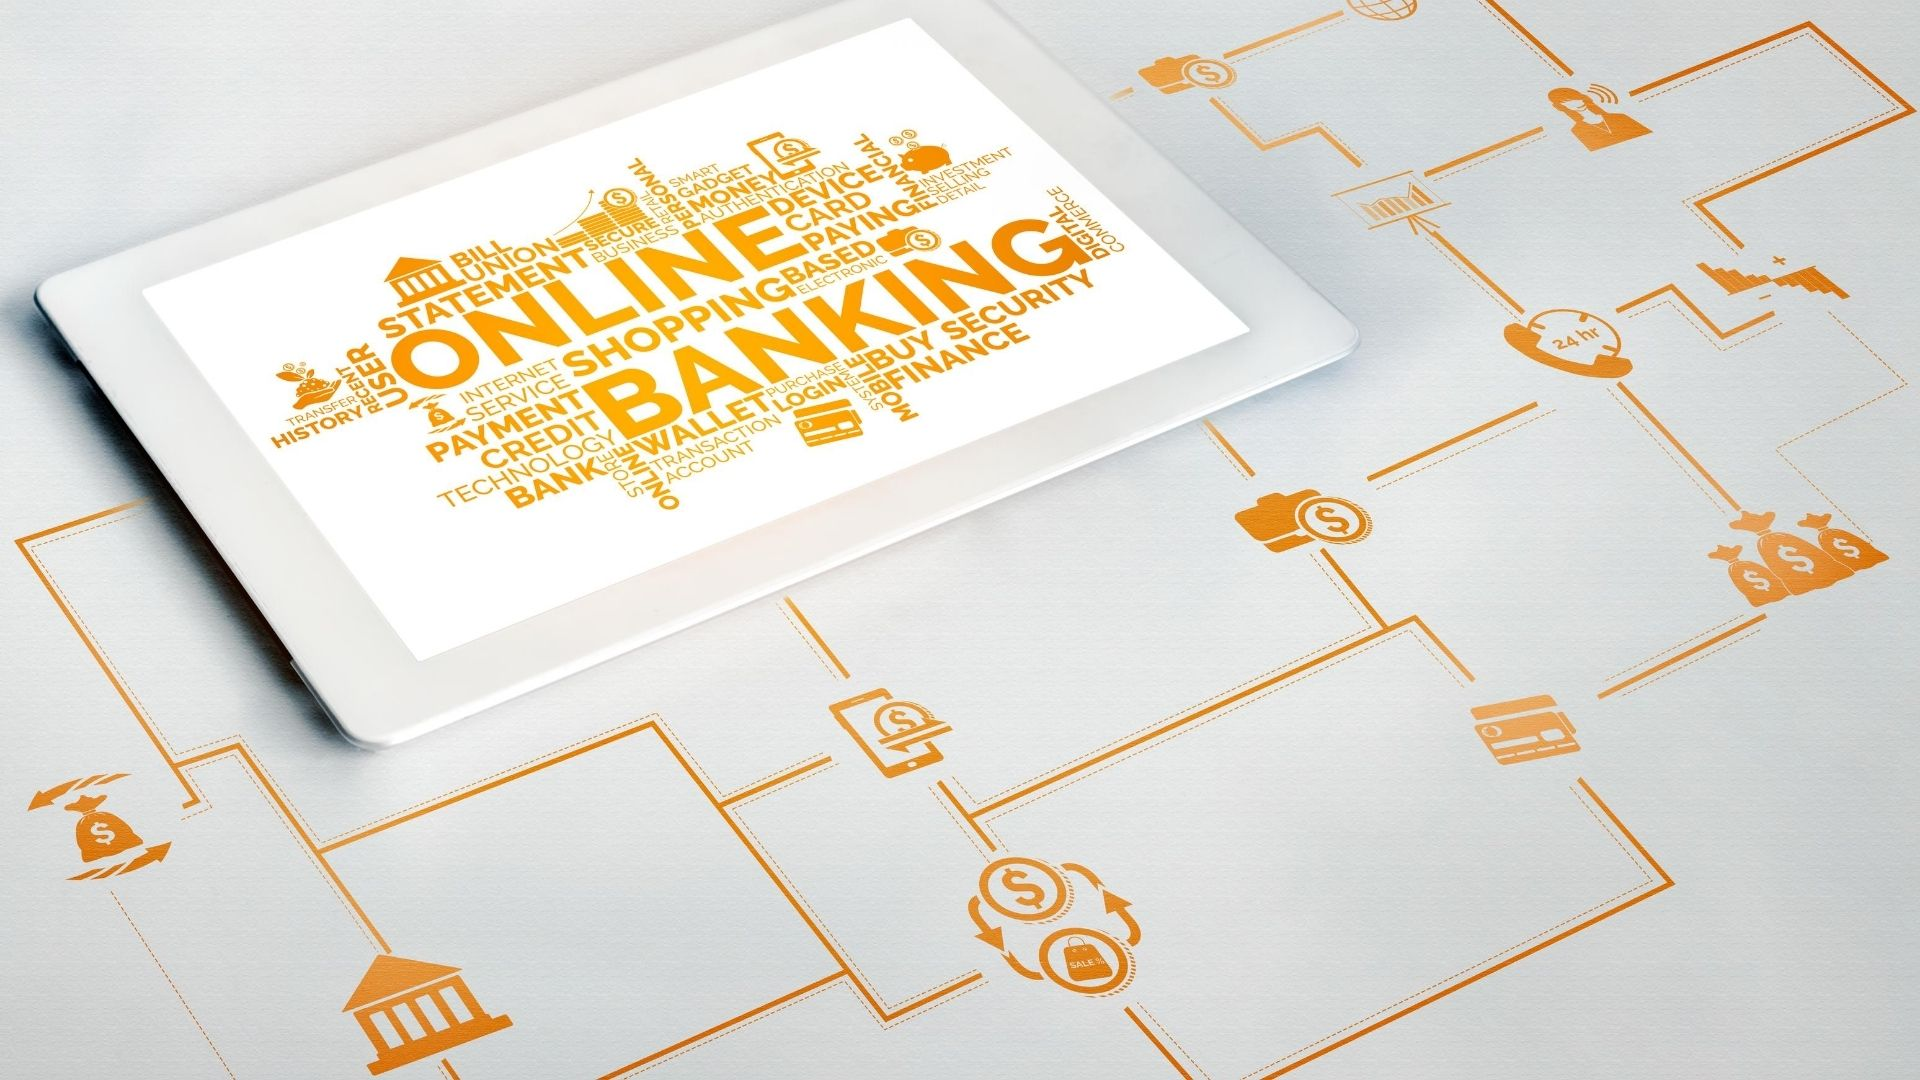 Sombank Selects Temenos Cloud-Native Technology to Deliver Digital Islamic Banking Services in Somalia 1